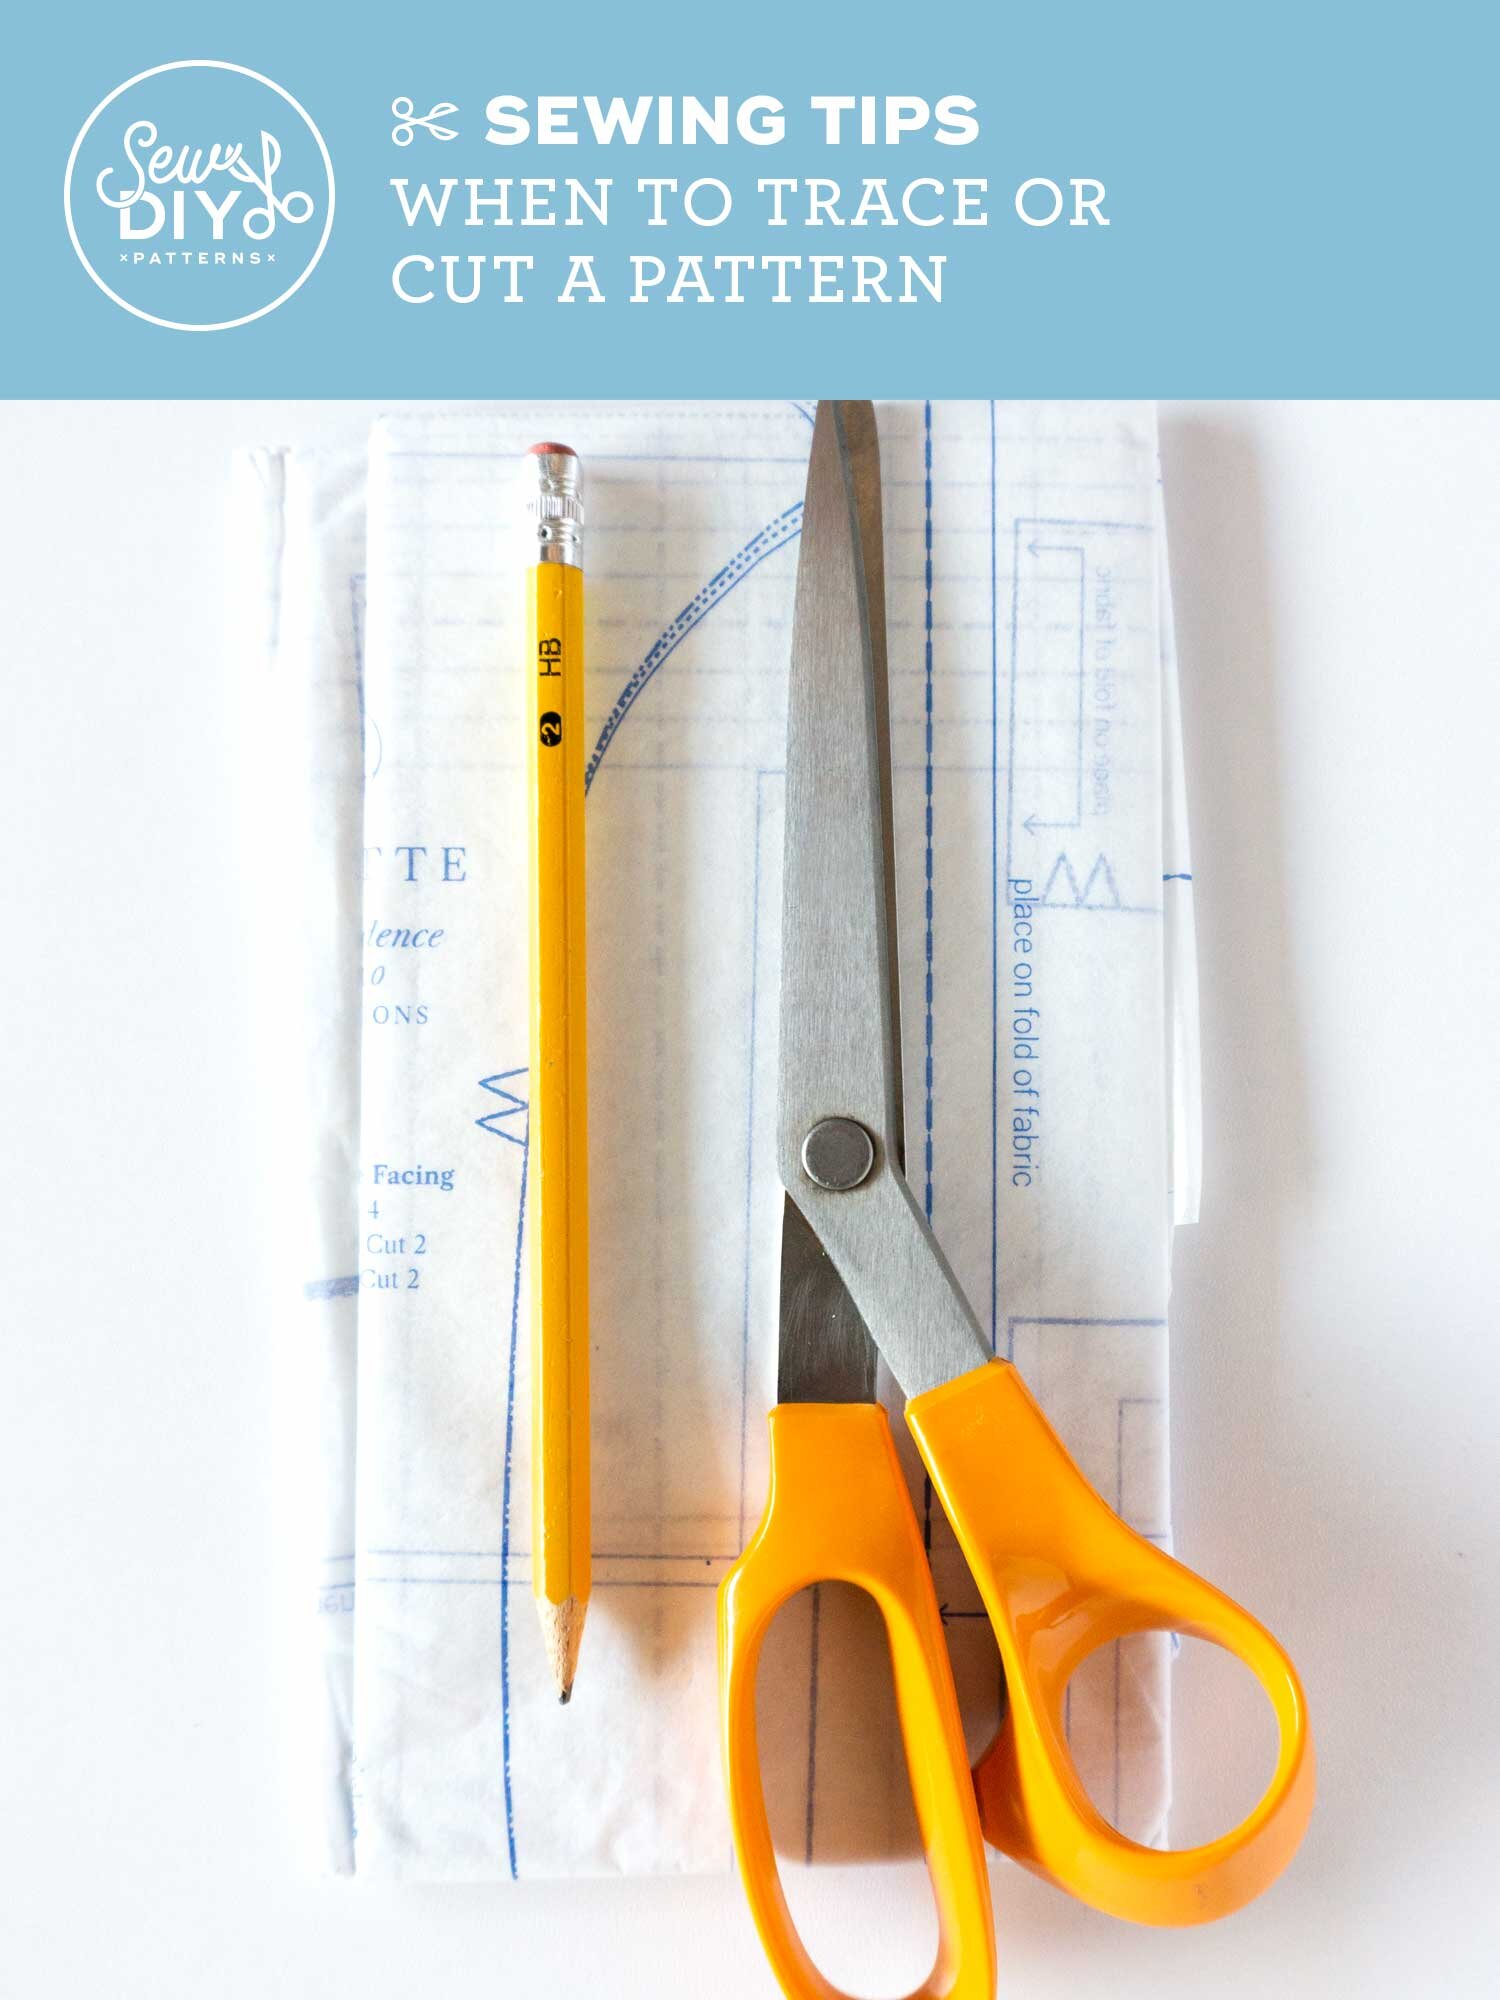 Watch this video of tips for when to trace versus when to cut a sewing pattern by Sew DIY